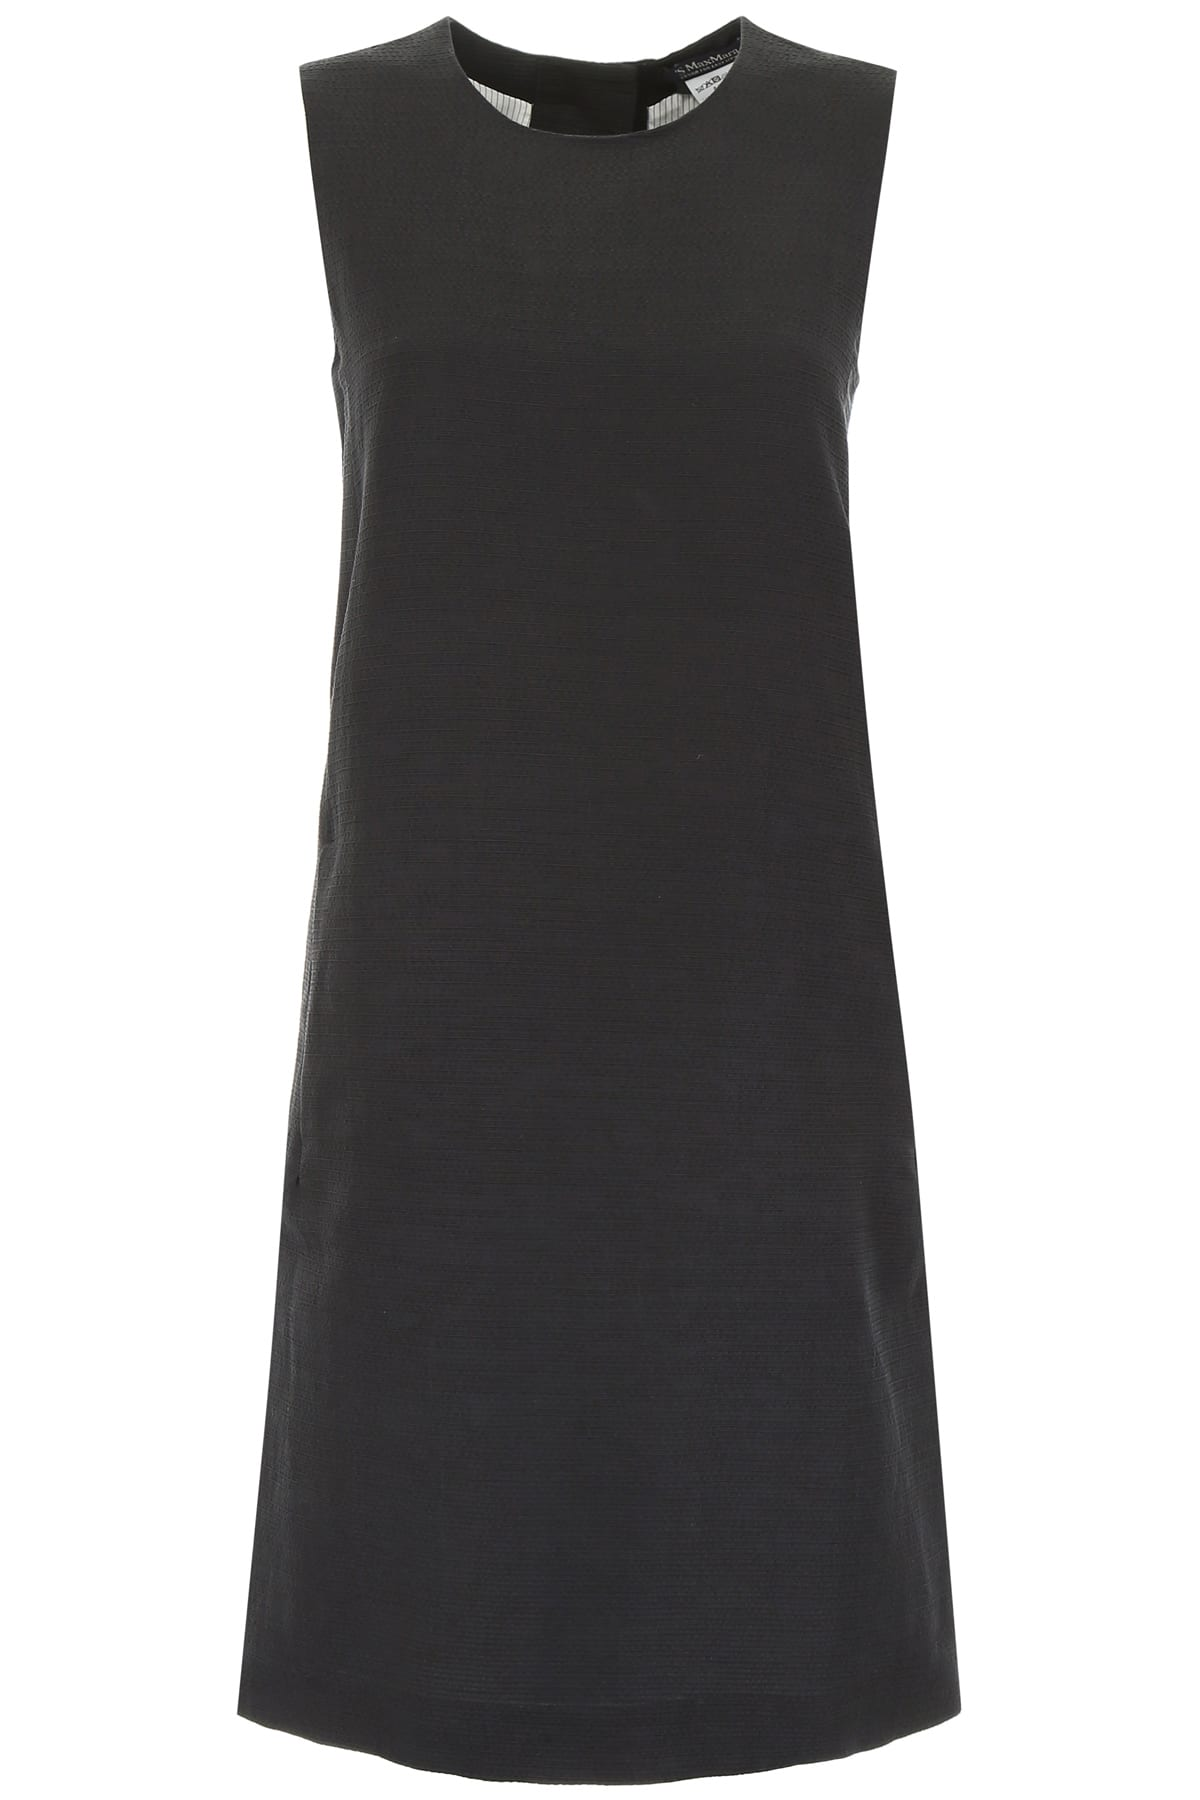 S Max Mara Here is The Cube Flared Dress